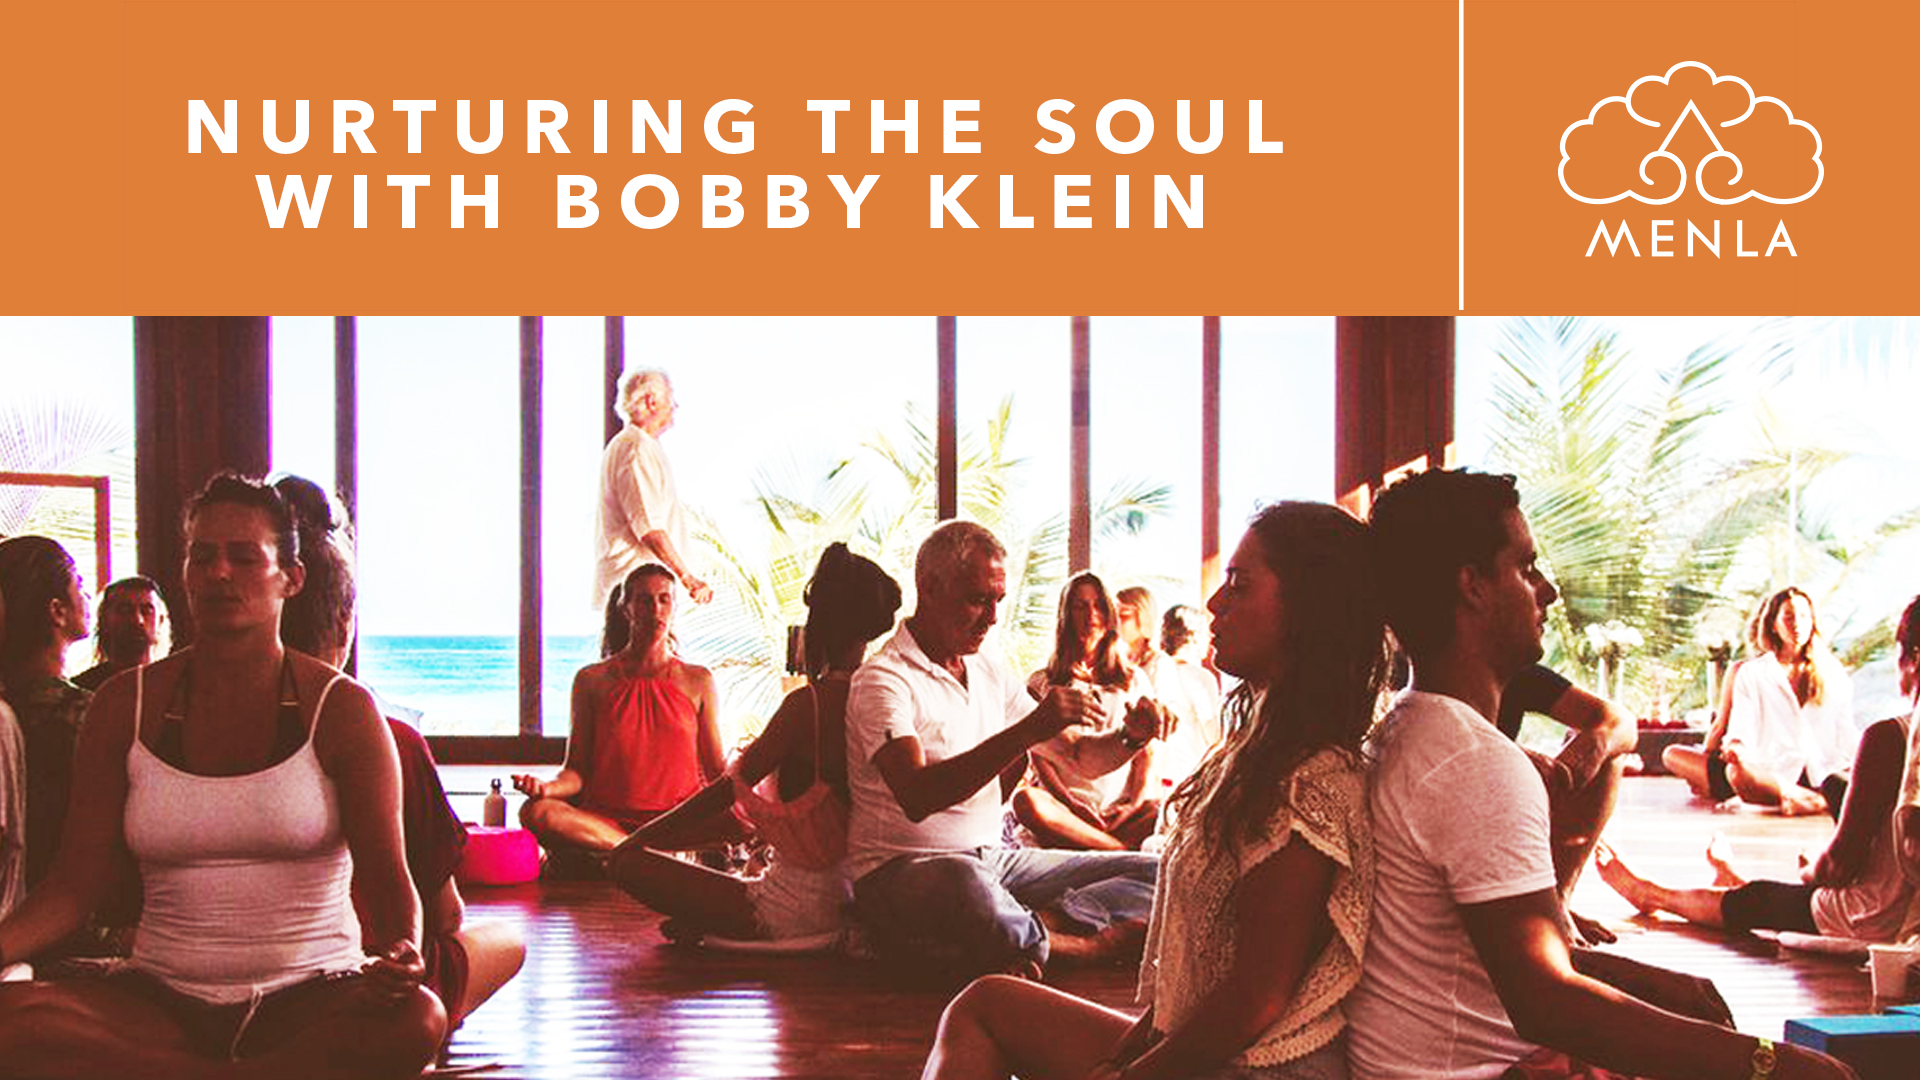 Nurturing the Soul October 11 - October 13, 2019 Bobby Klein